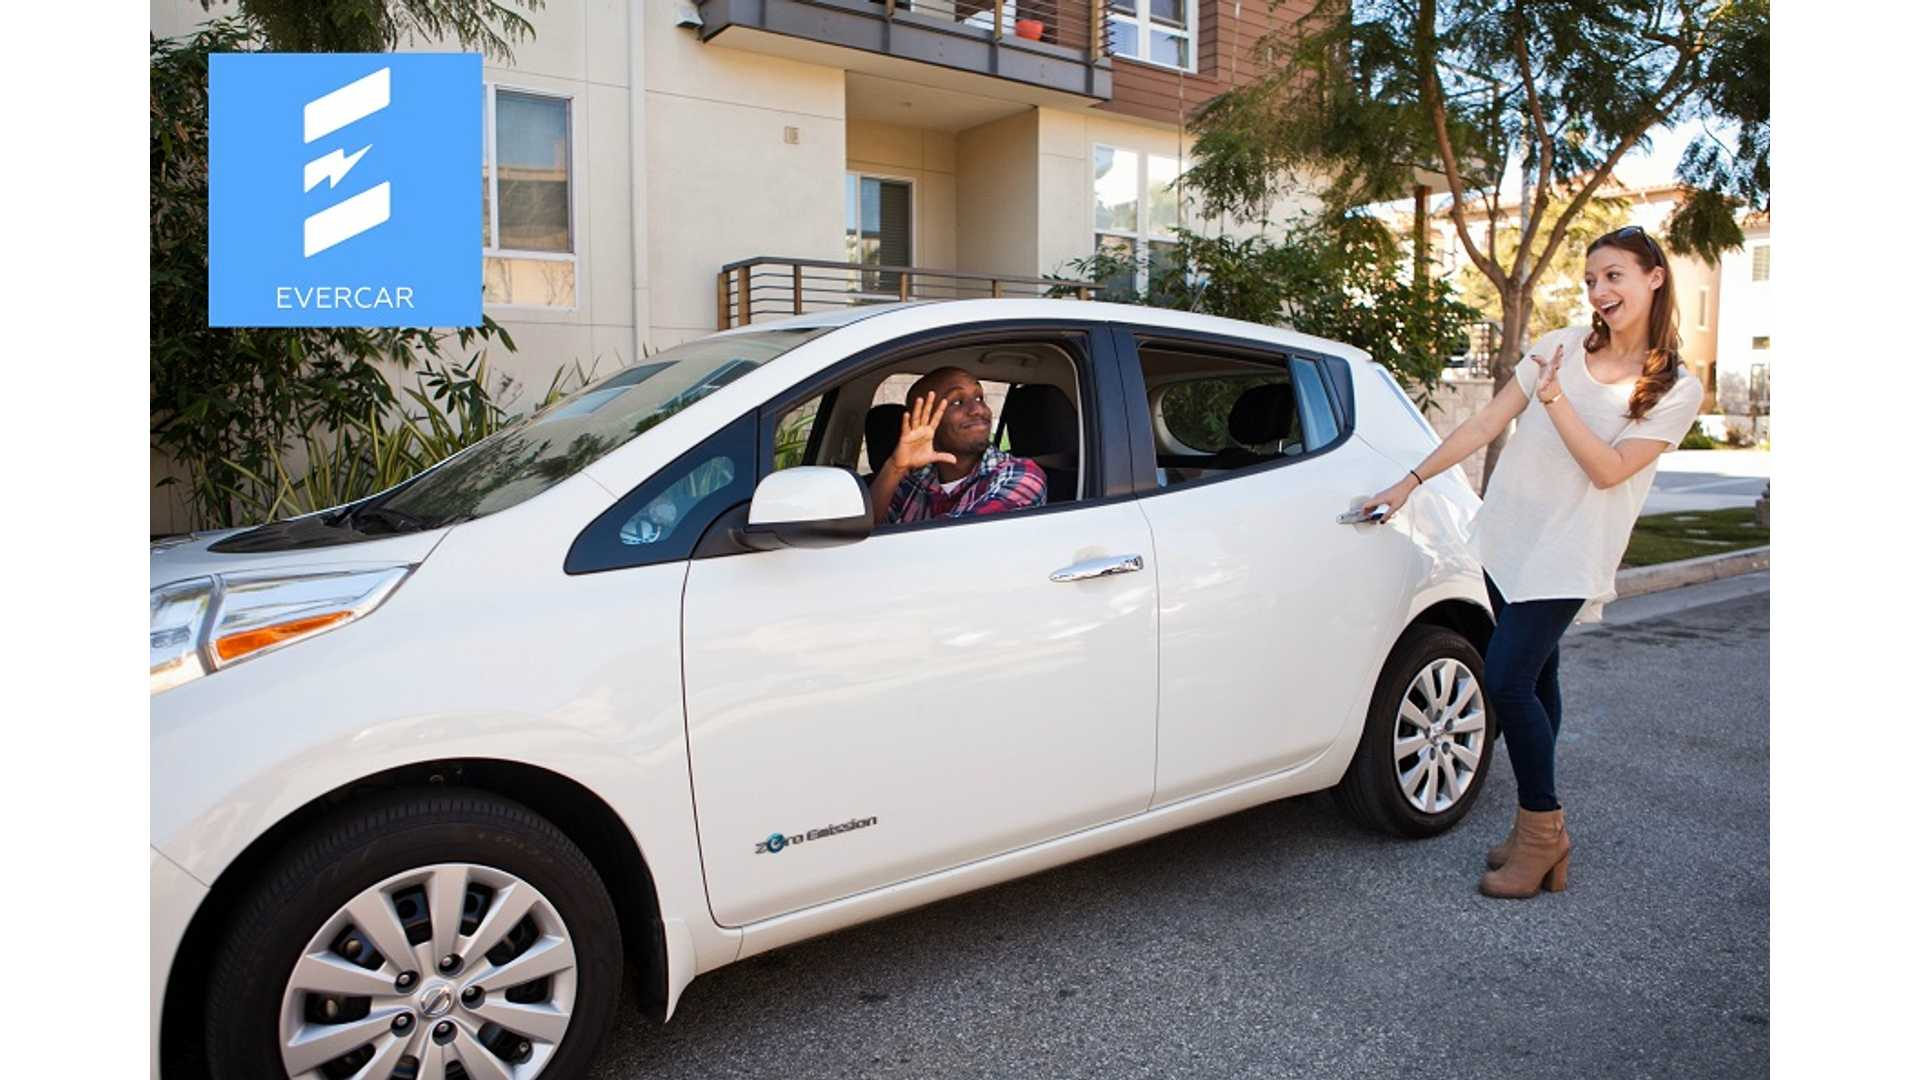 Drive For Uber Or Lyft In LA? Now You Can Rent An EV For $5 An Hour